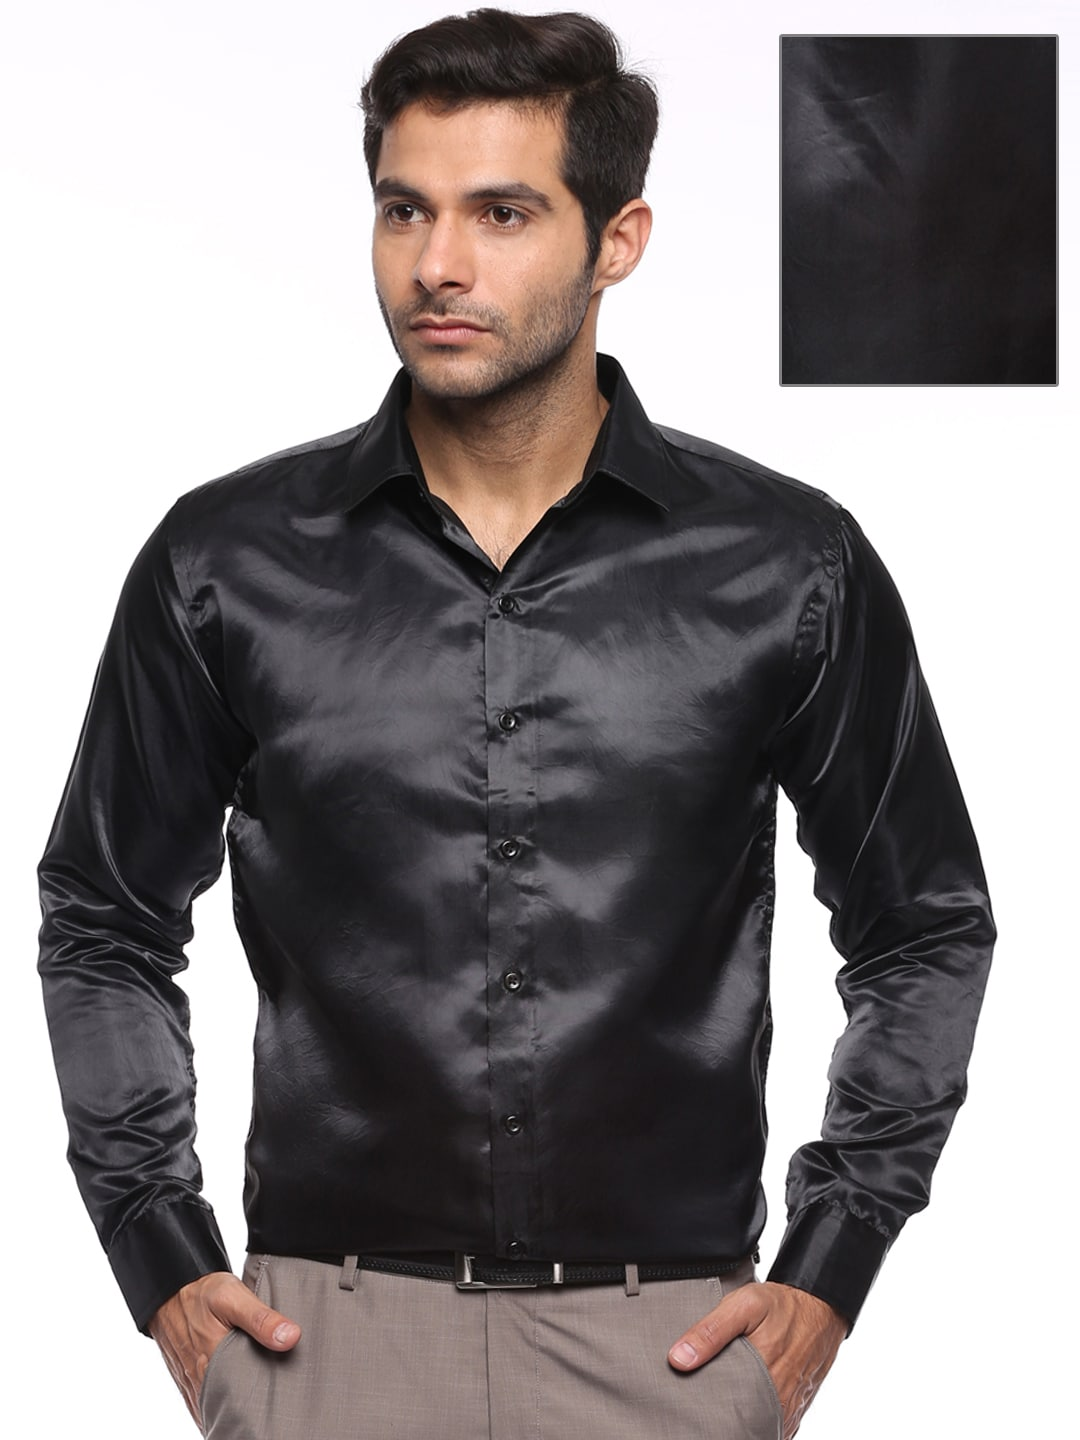 ad82f8bbc8c Mens Party Wear Shirts India – EDGE Engineering and Consulting Limited